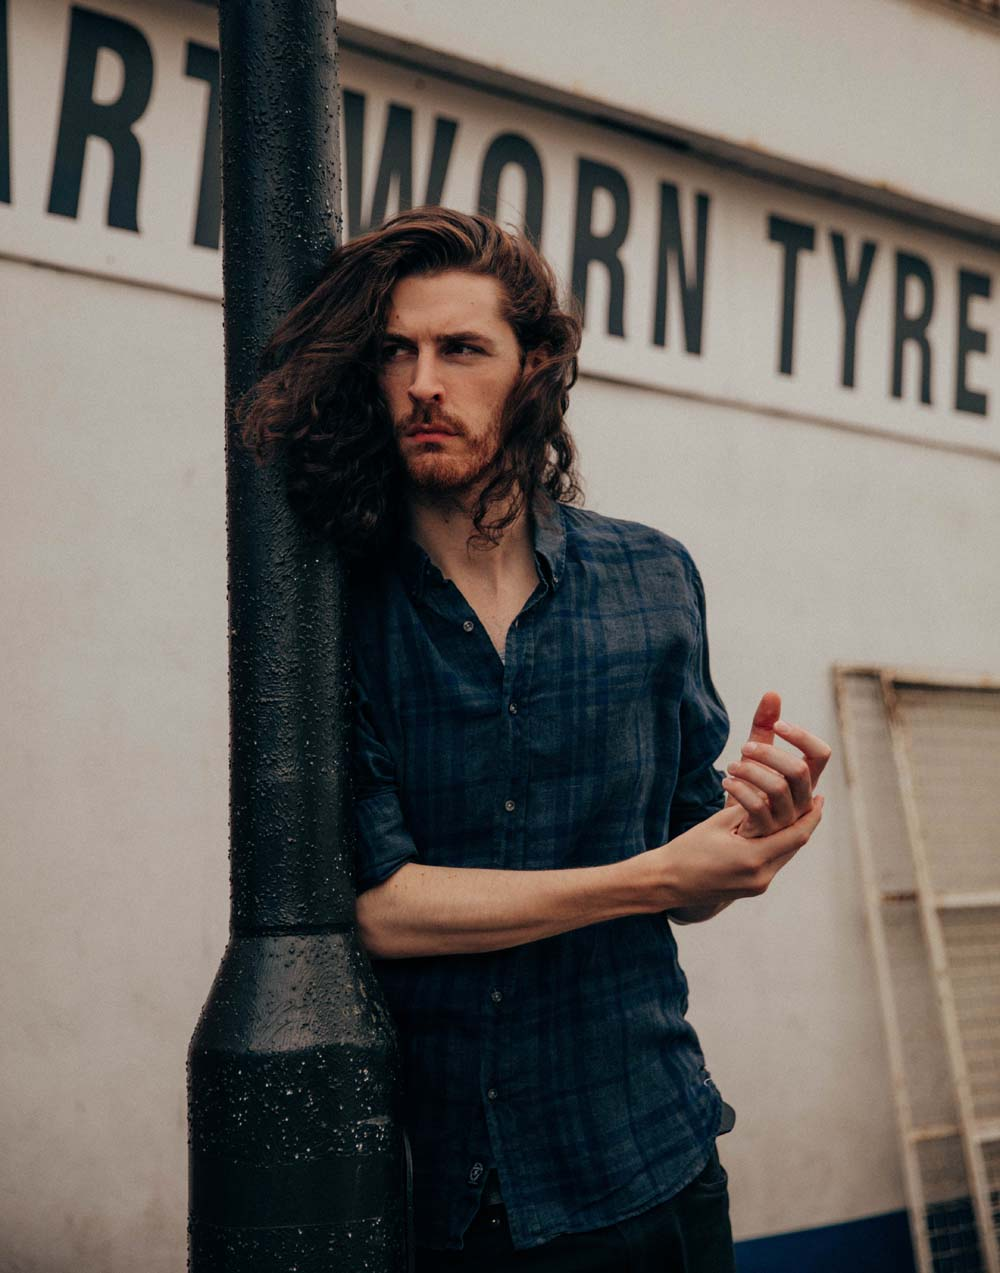 Hozier will play a sell-out performance at Cardiff's St David's Hall in September, 2019. Photo by Edward Cooke.